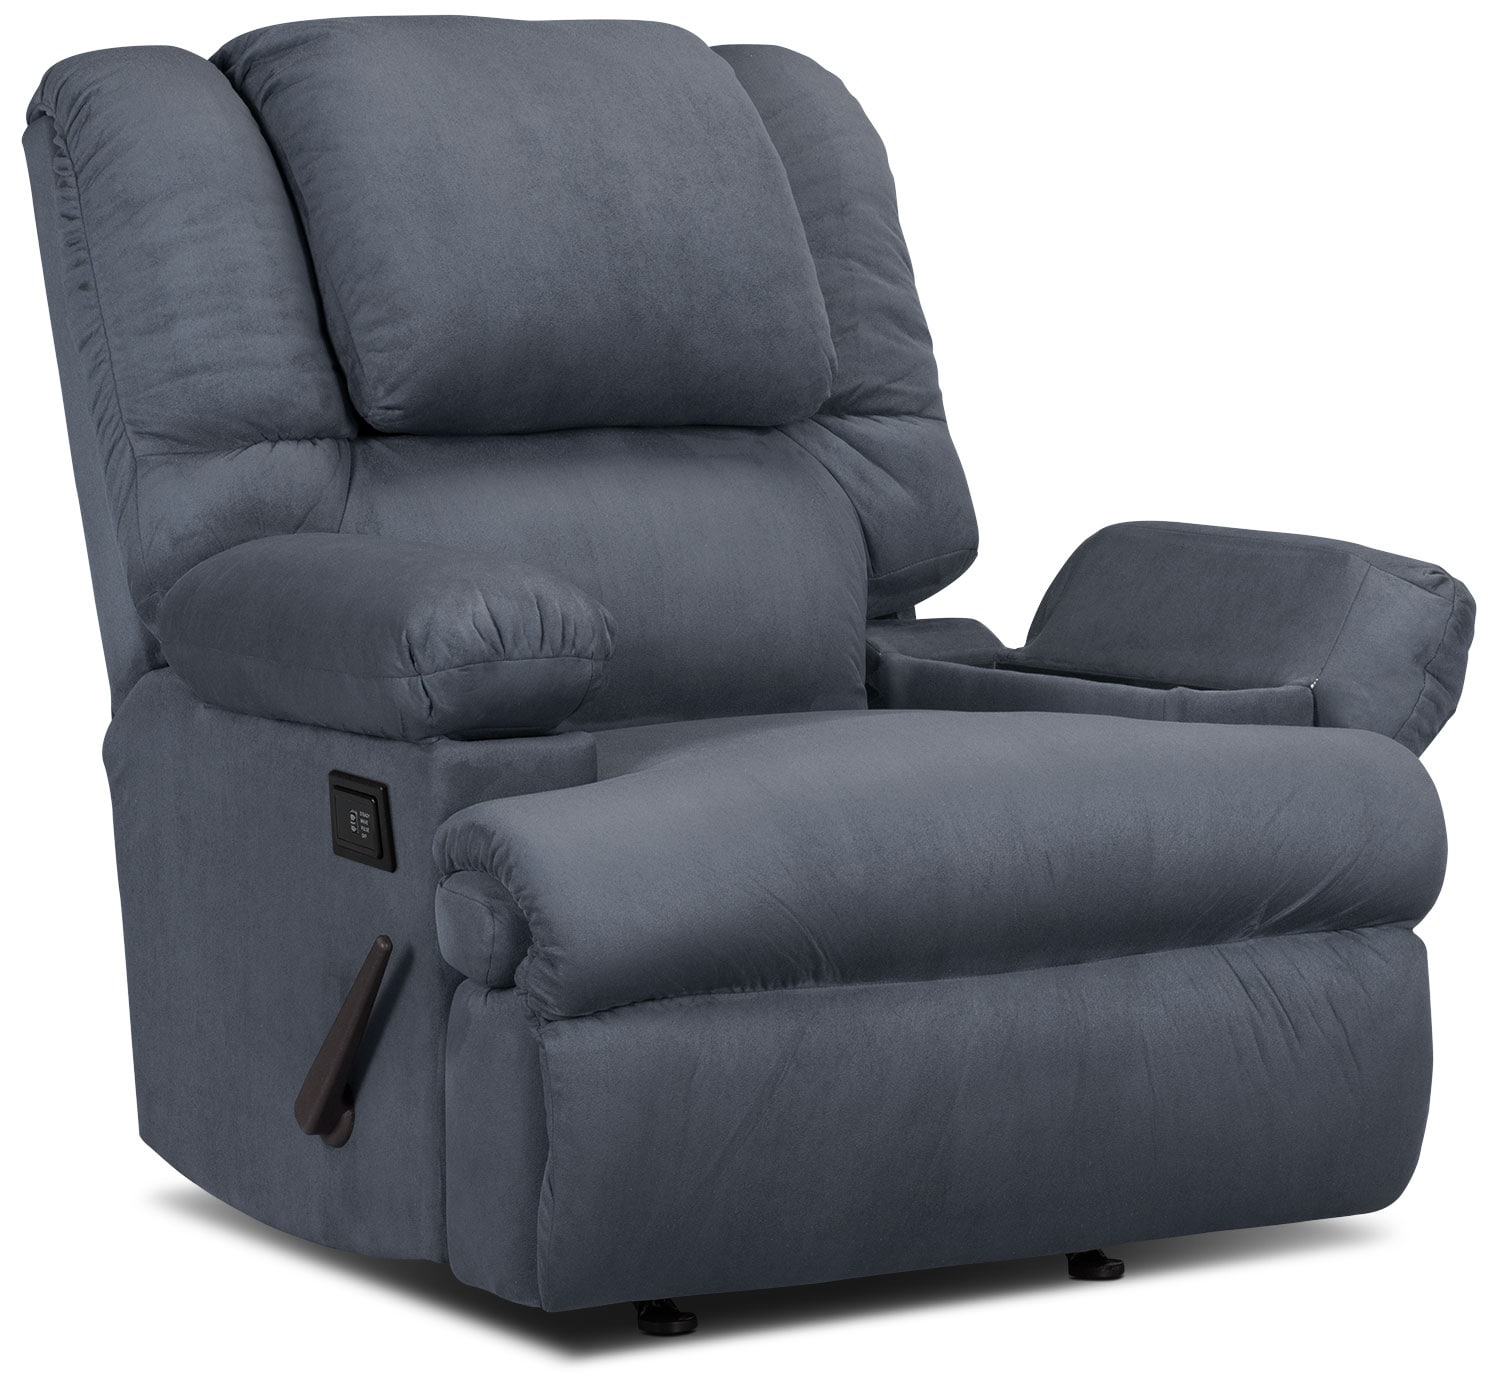 Designed2B Recliner 5598 Padded Suede Massage Recliner with Storage Arms - Navy